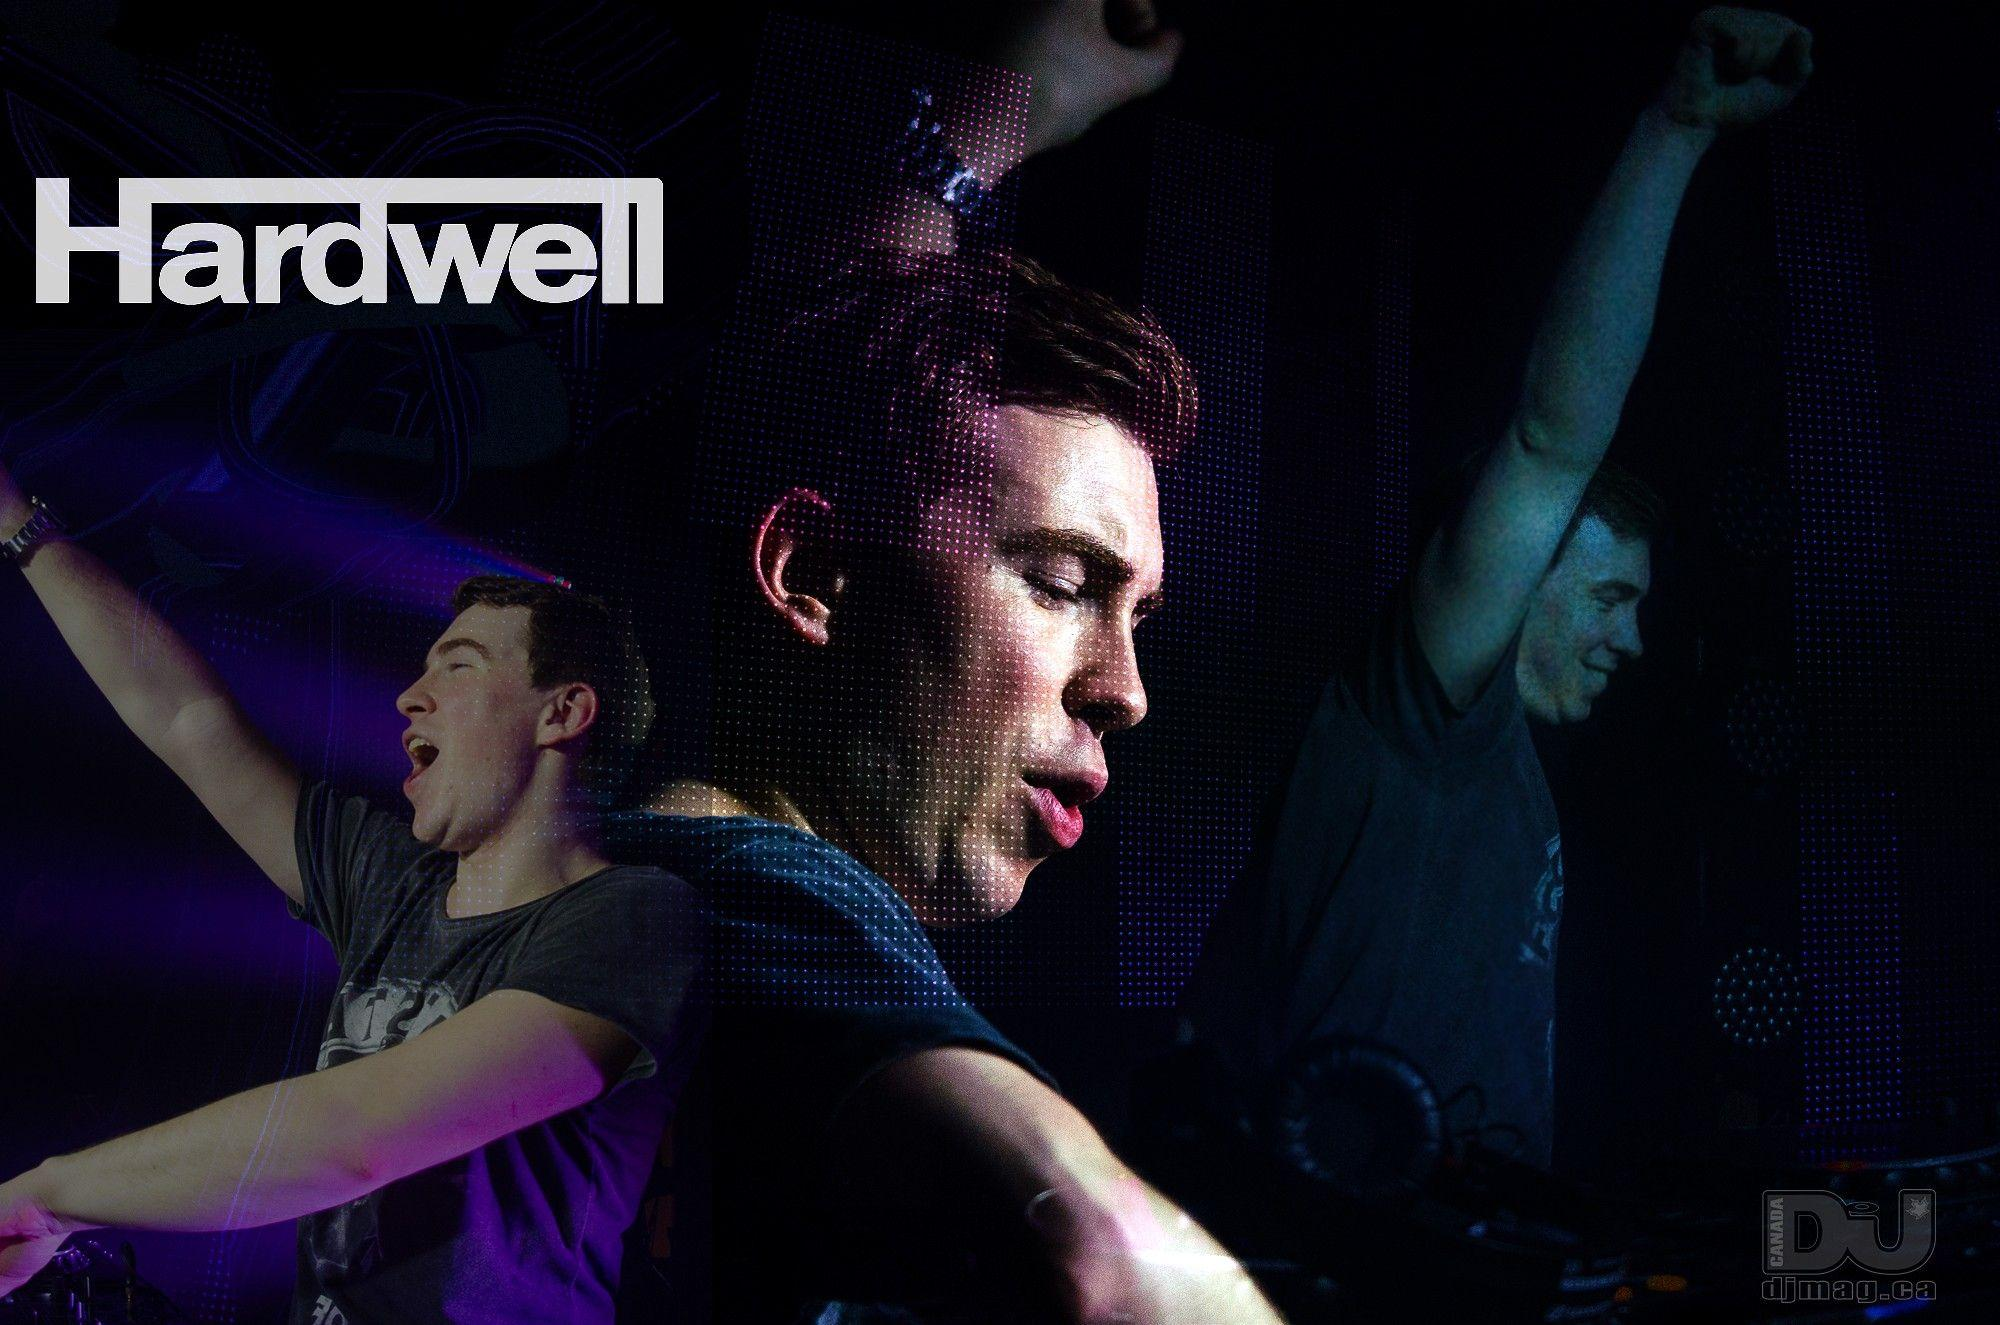 Dj hardwell wallpapers wallpaper cave hardwell dj music wallpapers hd desktop and mobile backgrounds thecheapjerseys Choice Image